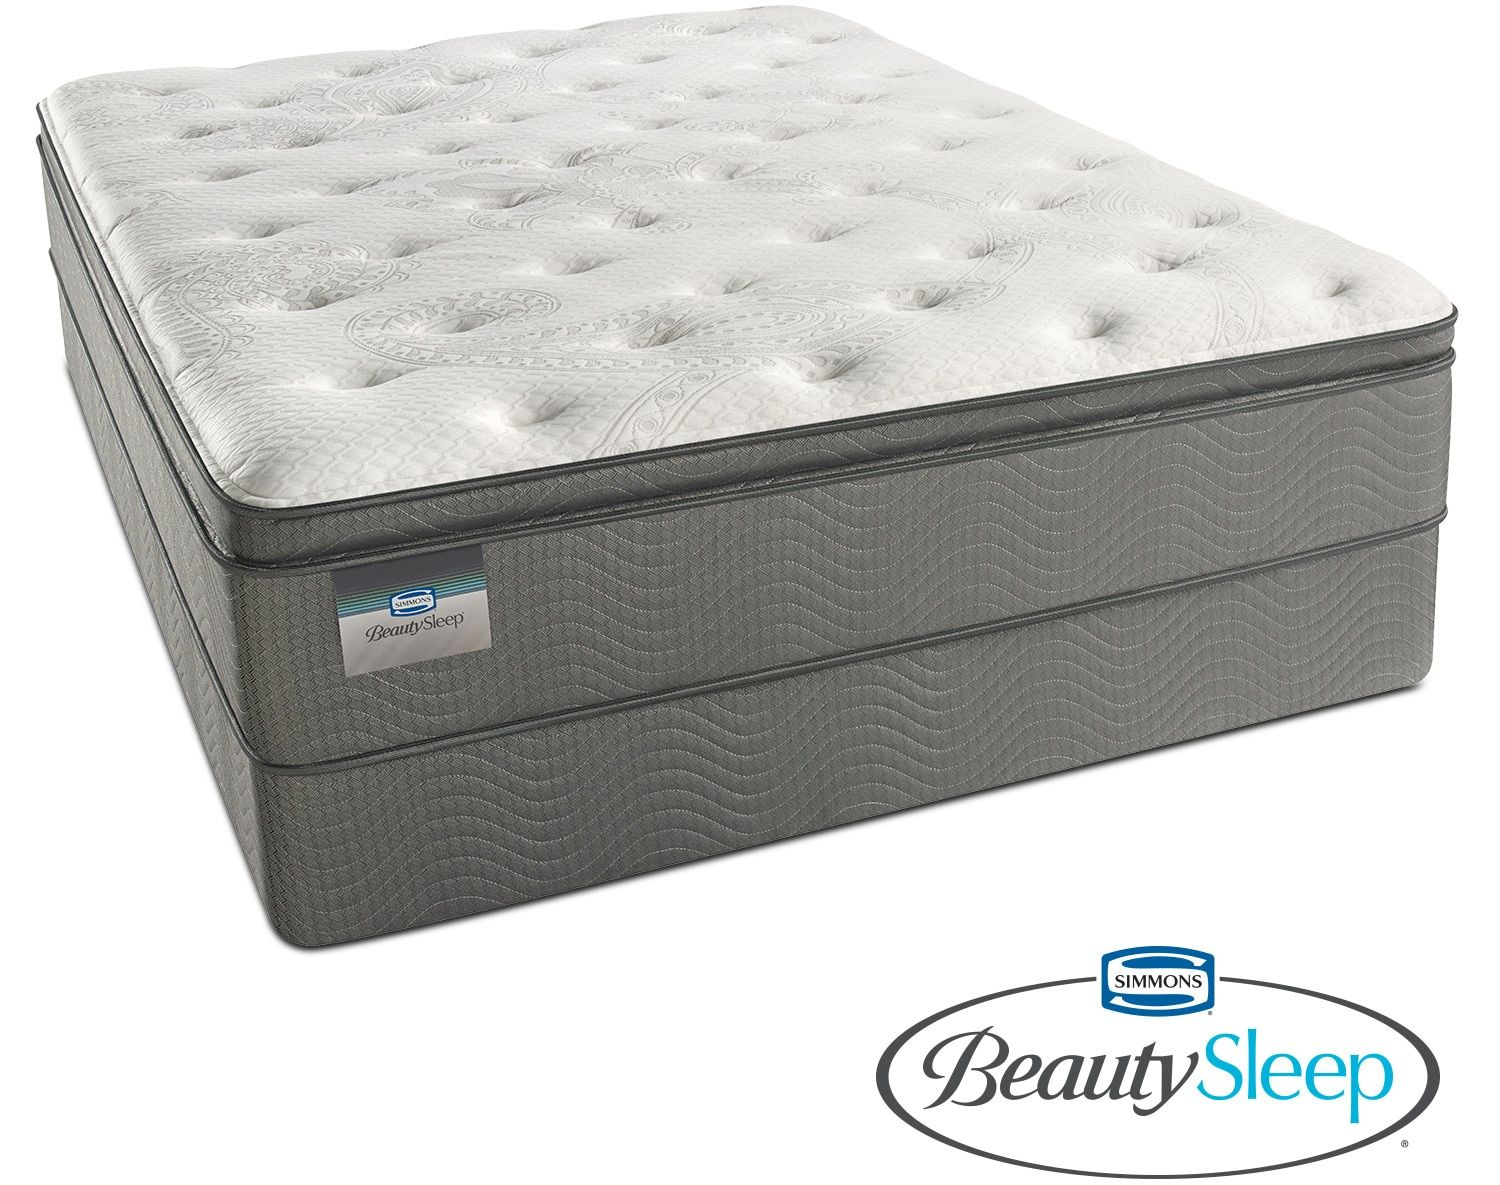 Stags Leap Luxury Firm Pillowtop King Mattress And Split Low